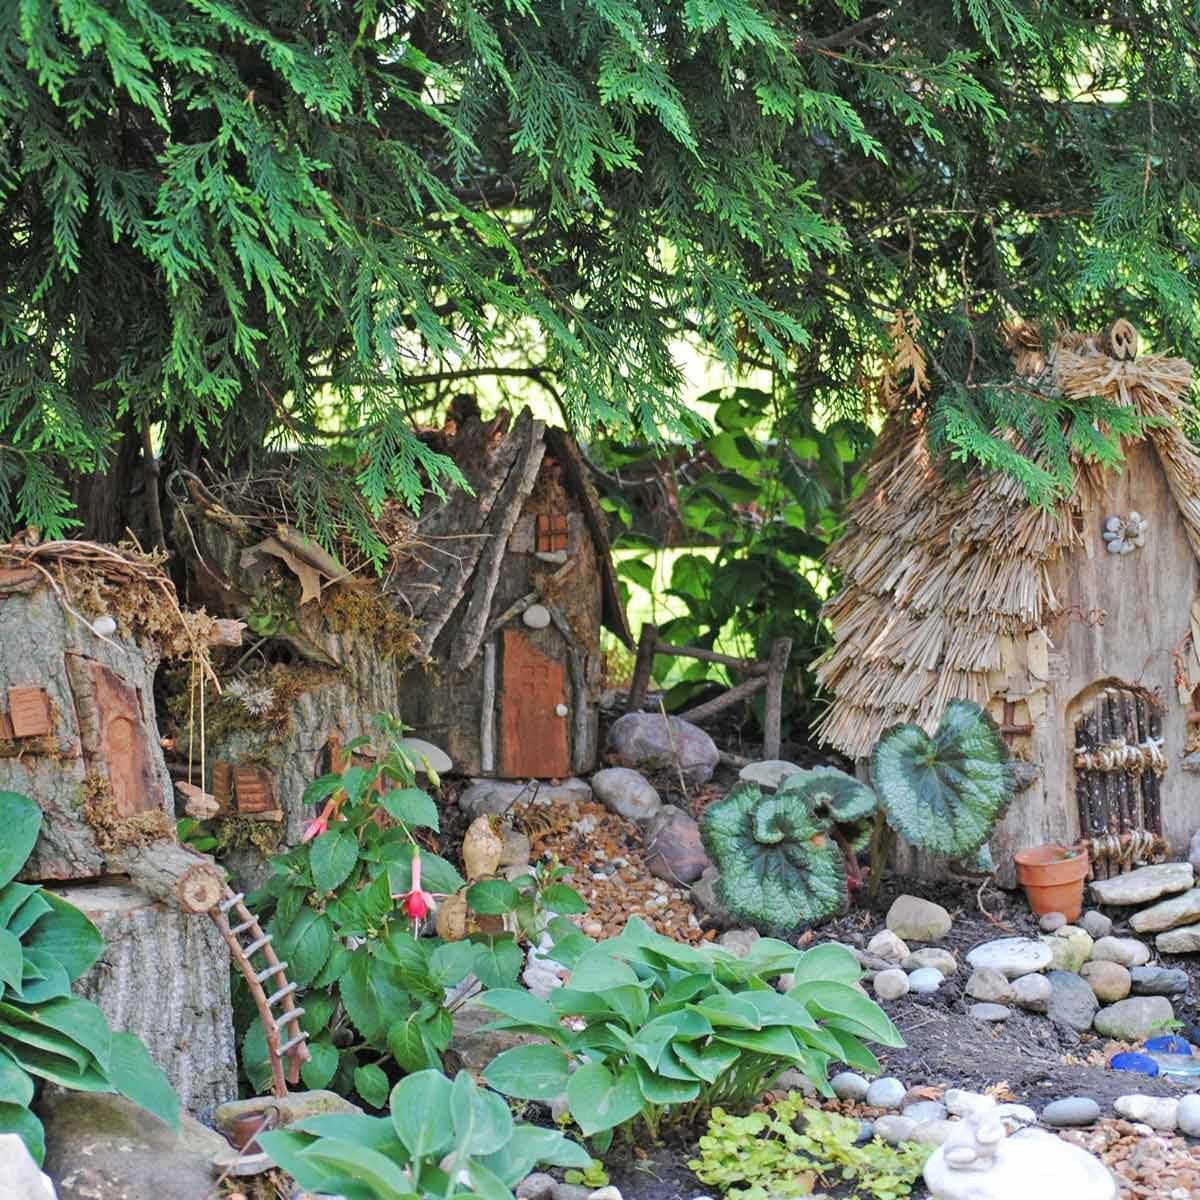 Hut Village Fairy Garden